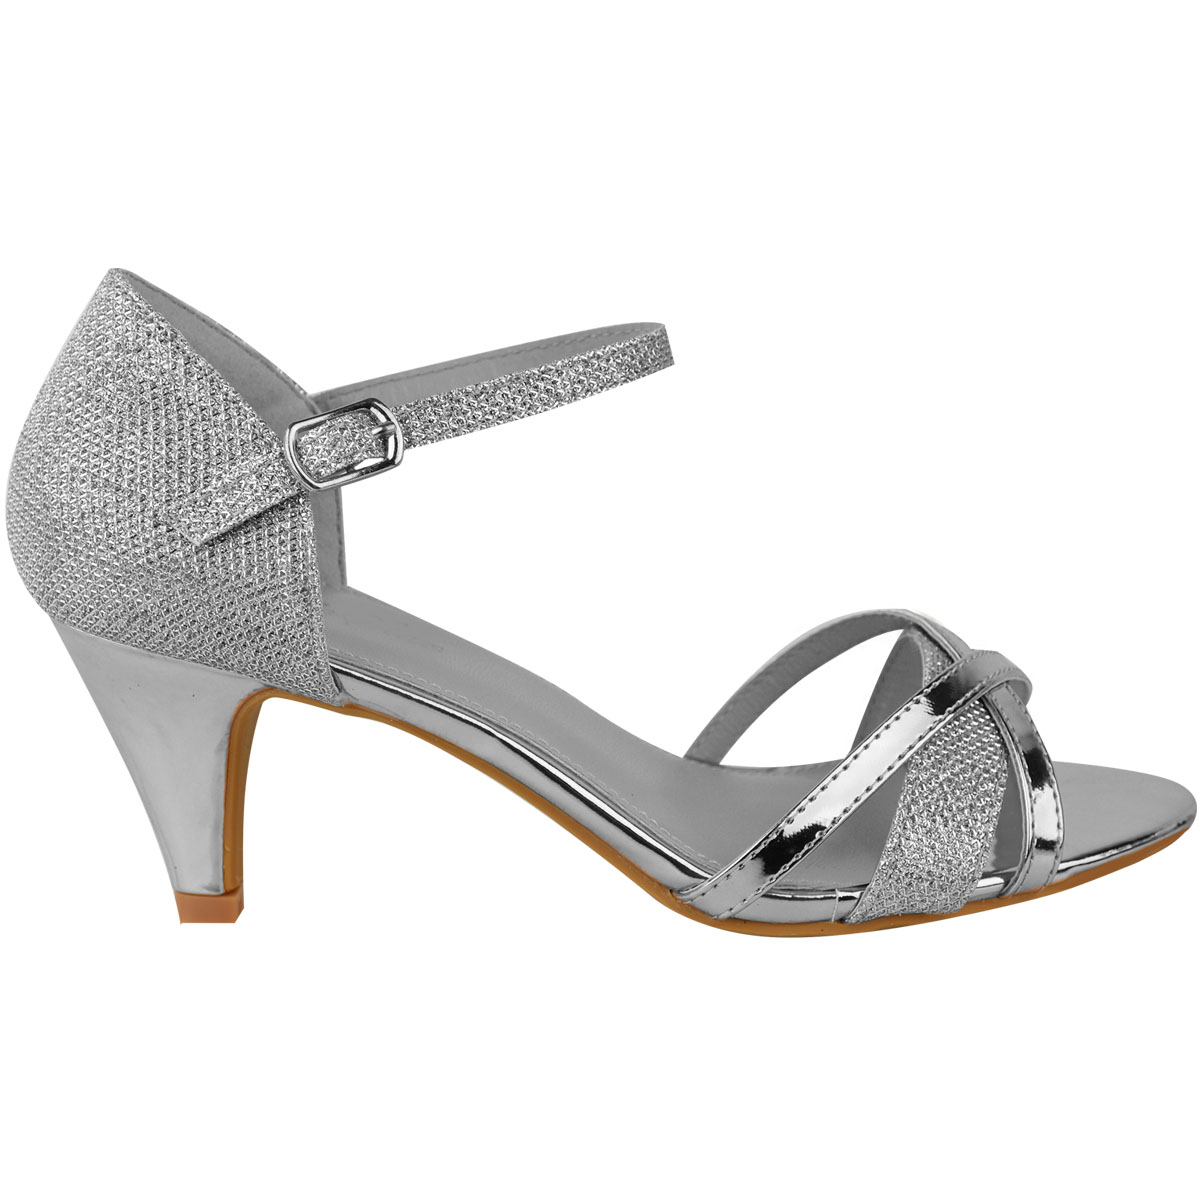 Bridal Shoes Silver: Womens Ladies Low Heel Wedding Bridal Silver Sandals Party